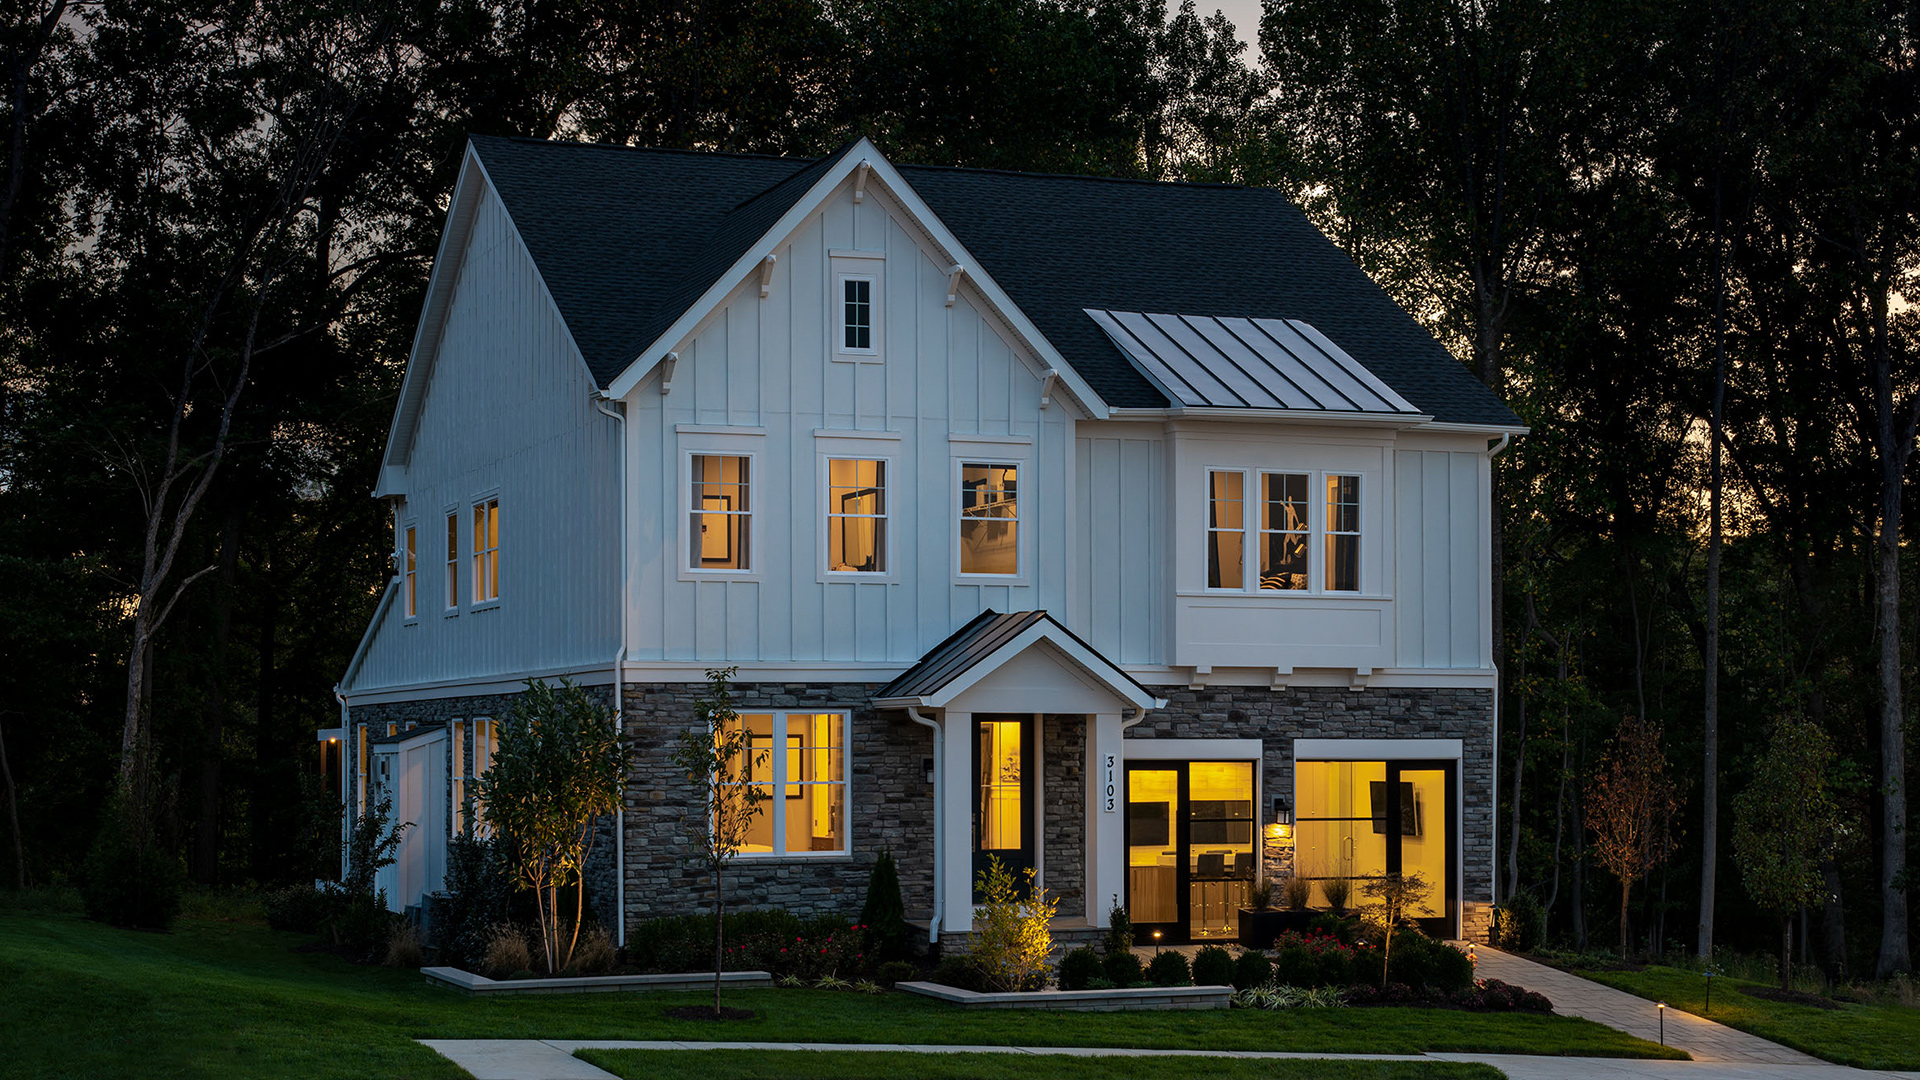 Brand-new exterior designs and architecture